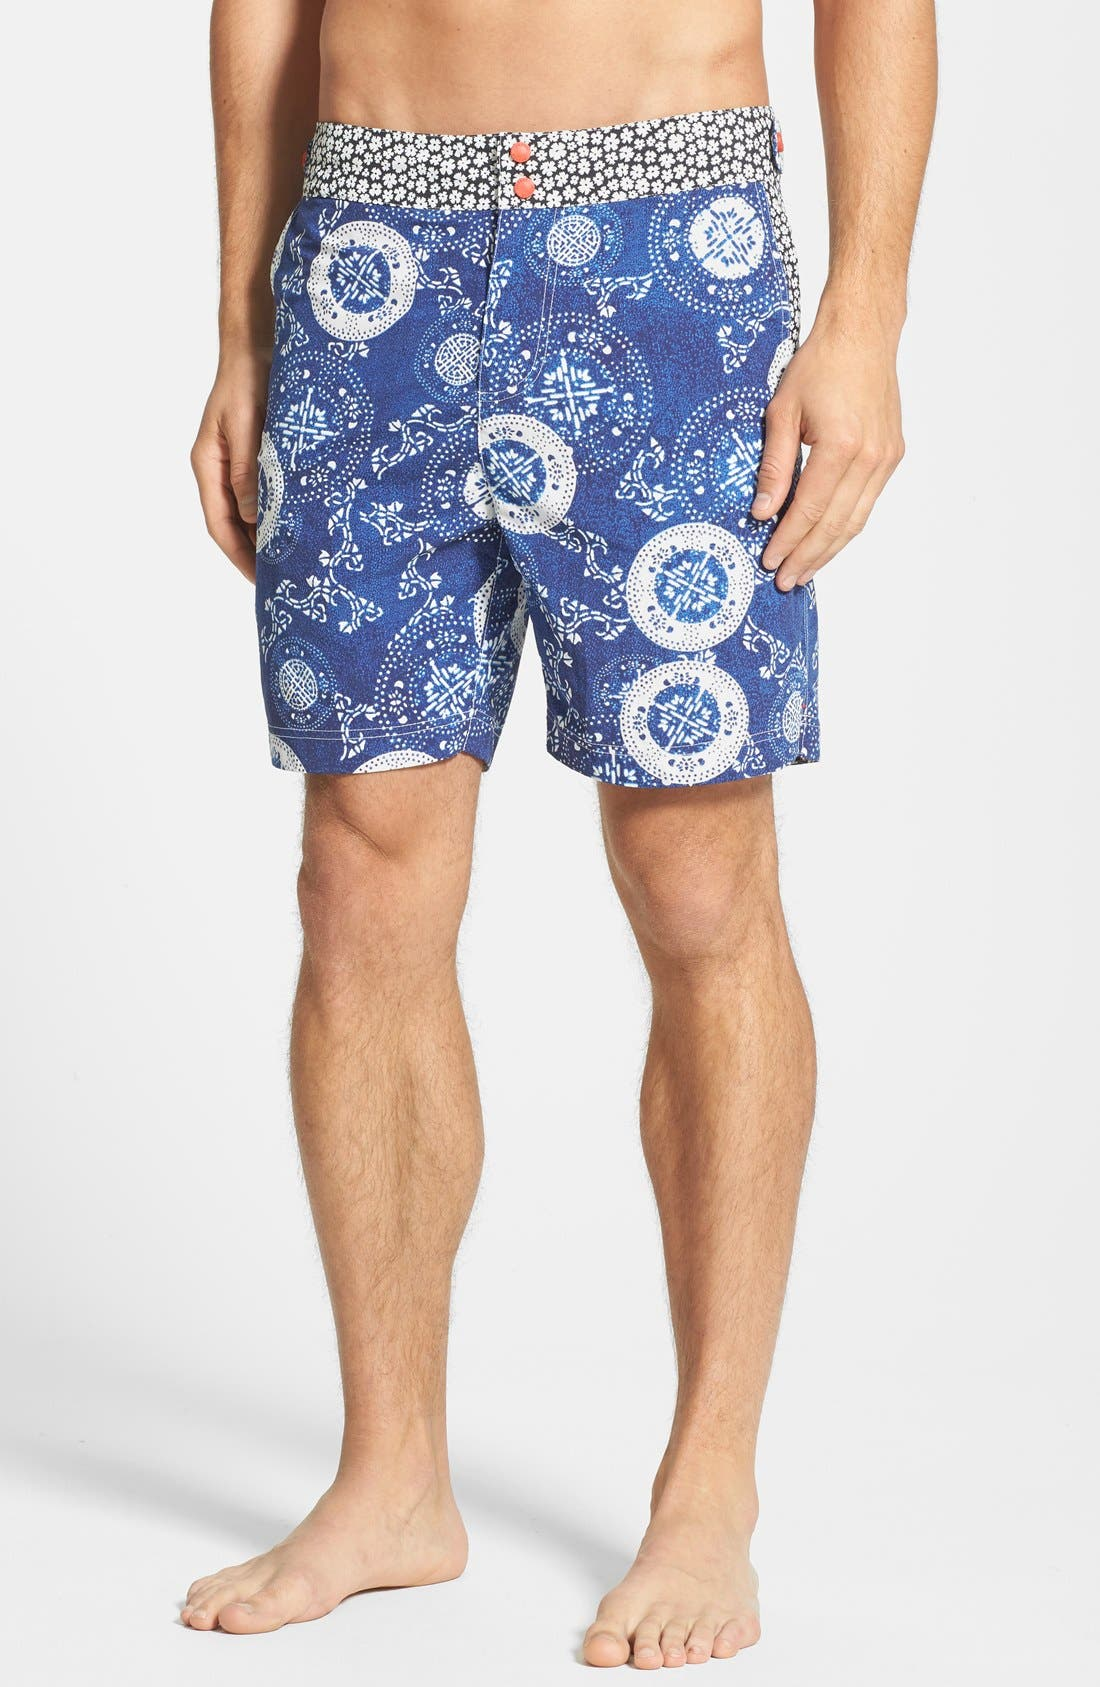 Alternate Image 1 Selected - Robert Graham 'Parrot' Print Board Shorts